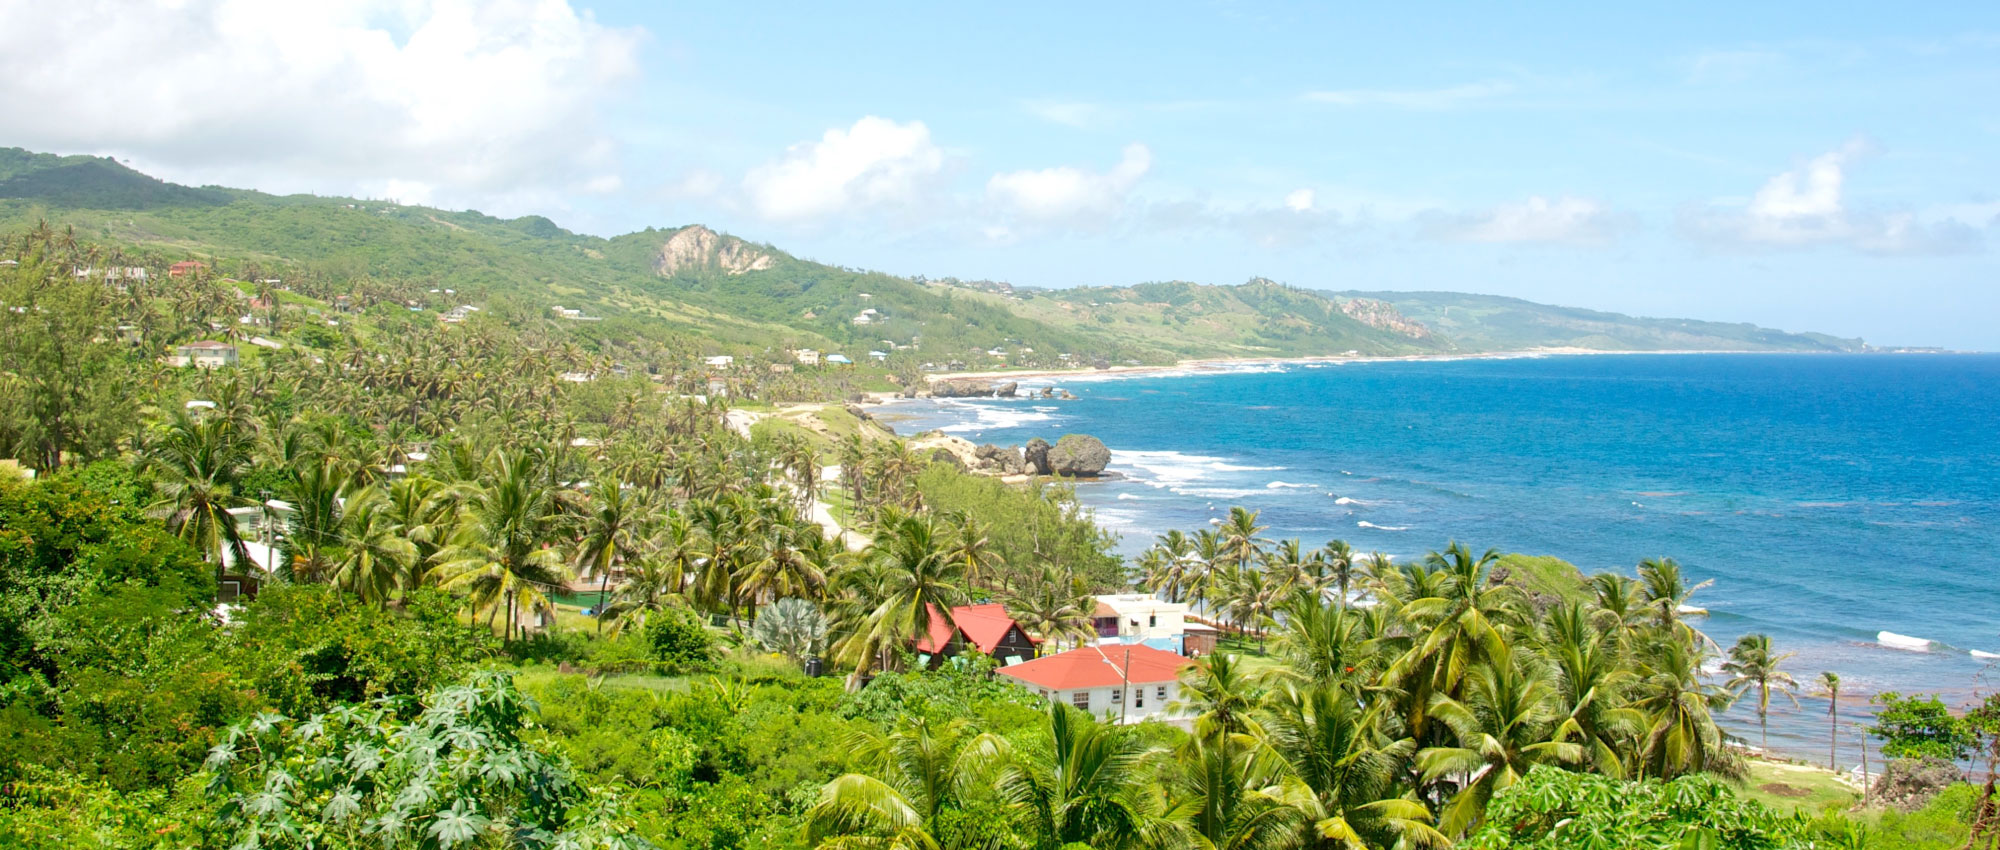 Explore The Beauty Of Caribbean: The Best Online Travel Guide Of Barbados